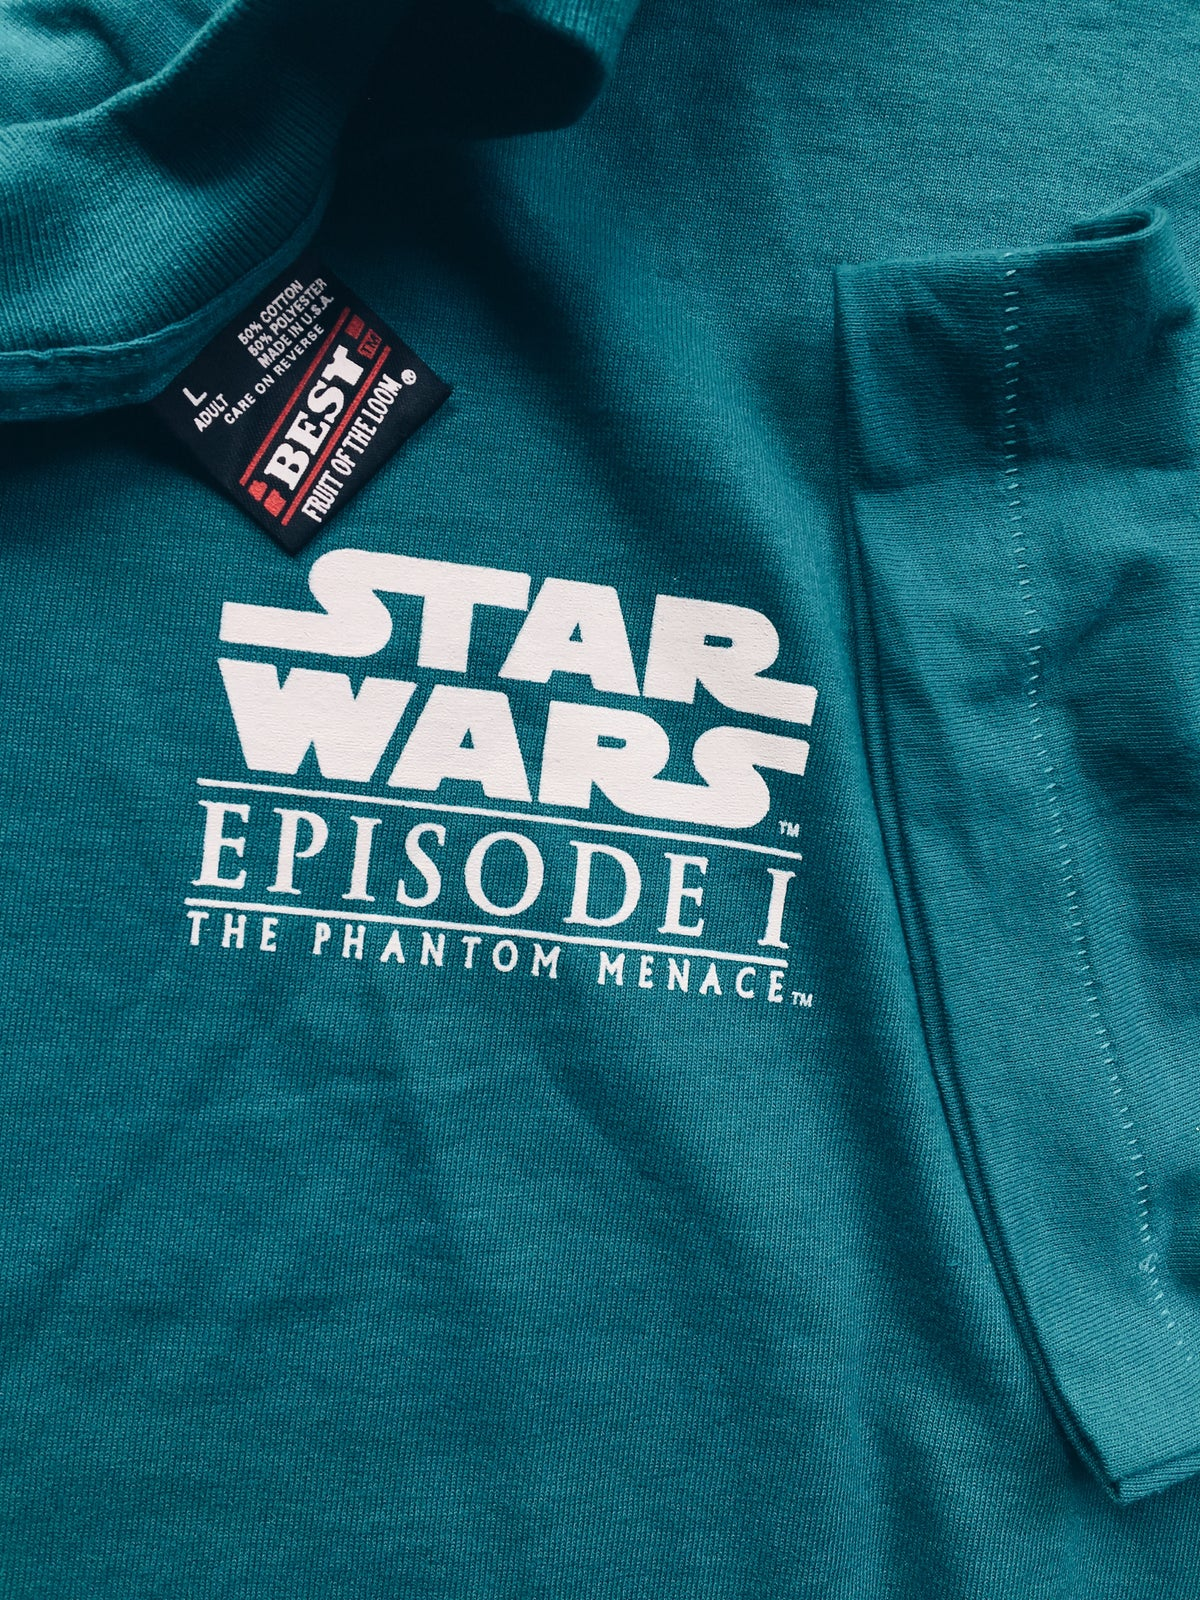 Image of Original 1999 KFC Star Wars Episode 1 Promo Tee.